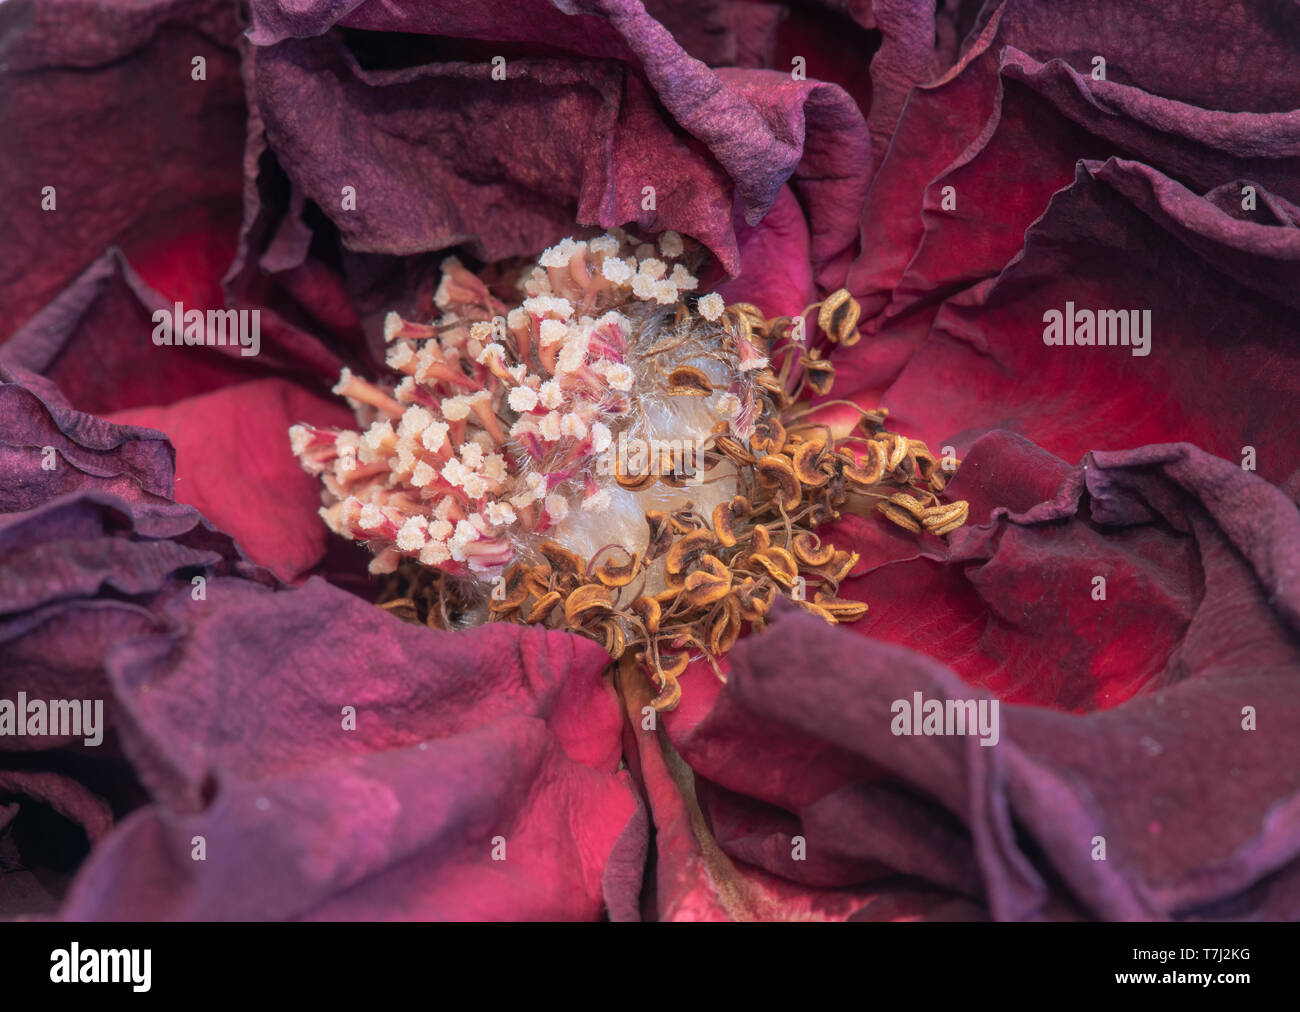 Fine art still life floral macro of the heart of an aged lush purple dark red velvety rose blossom with detailed texture - Stock Image